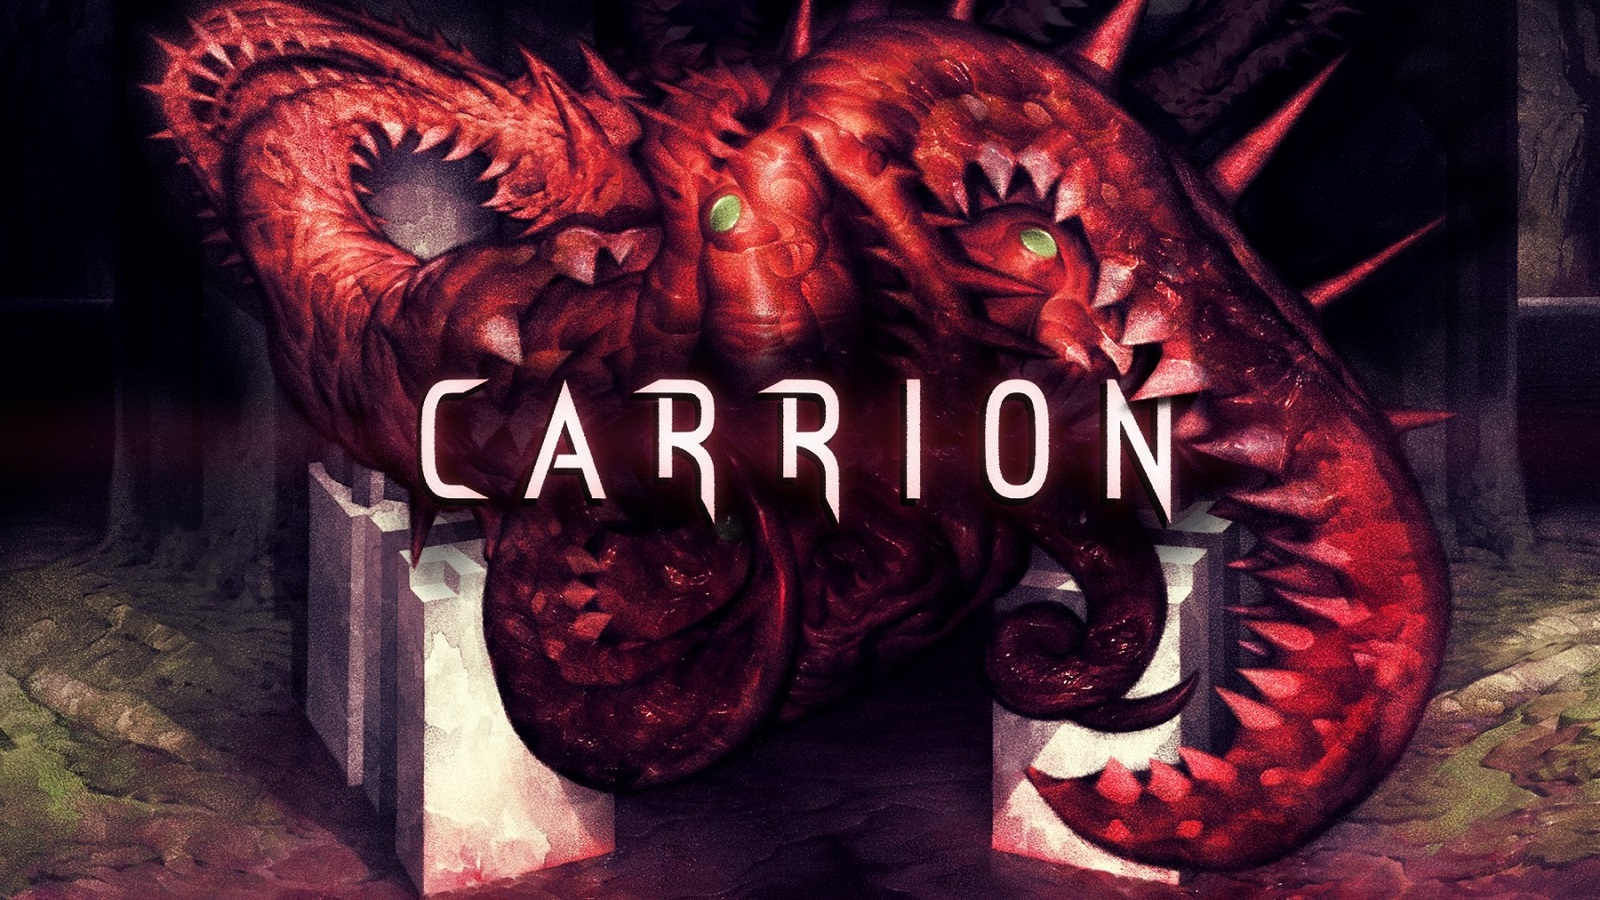 Антихоррор Carrion выйдет до конца лета, в том числе на Nintendo Switch